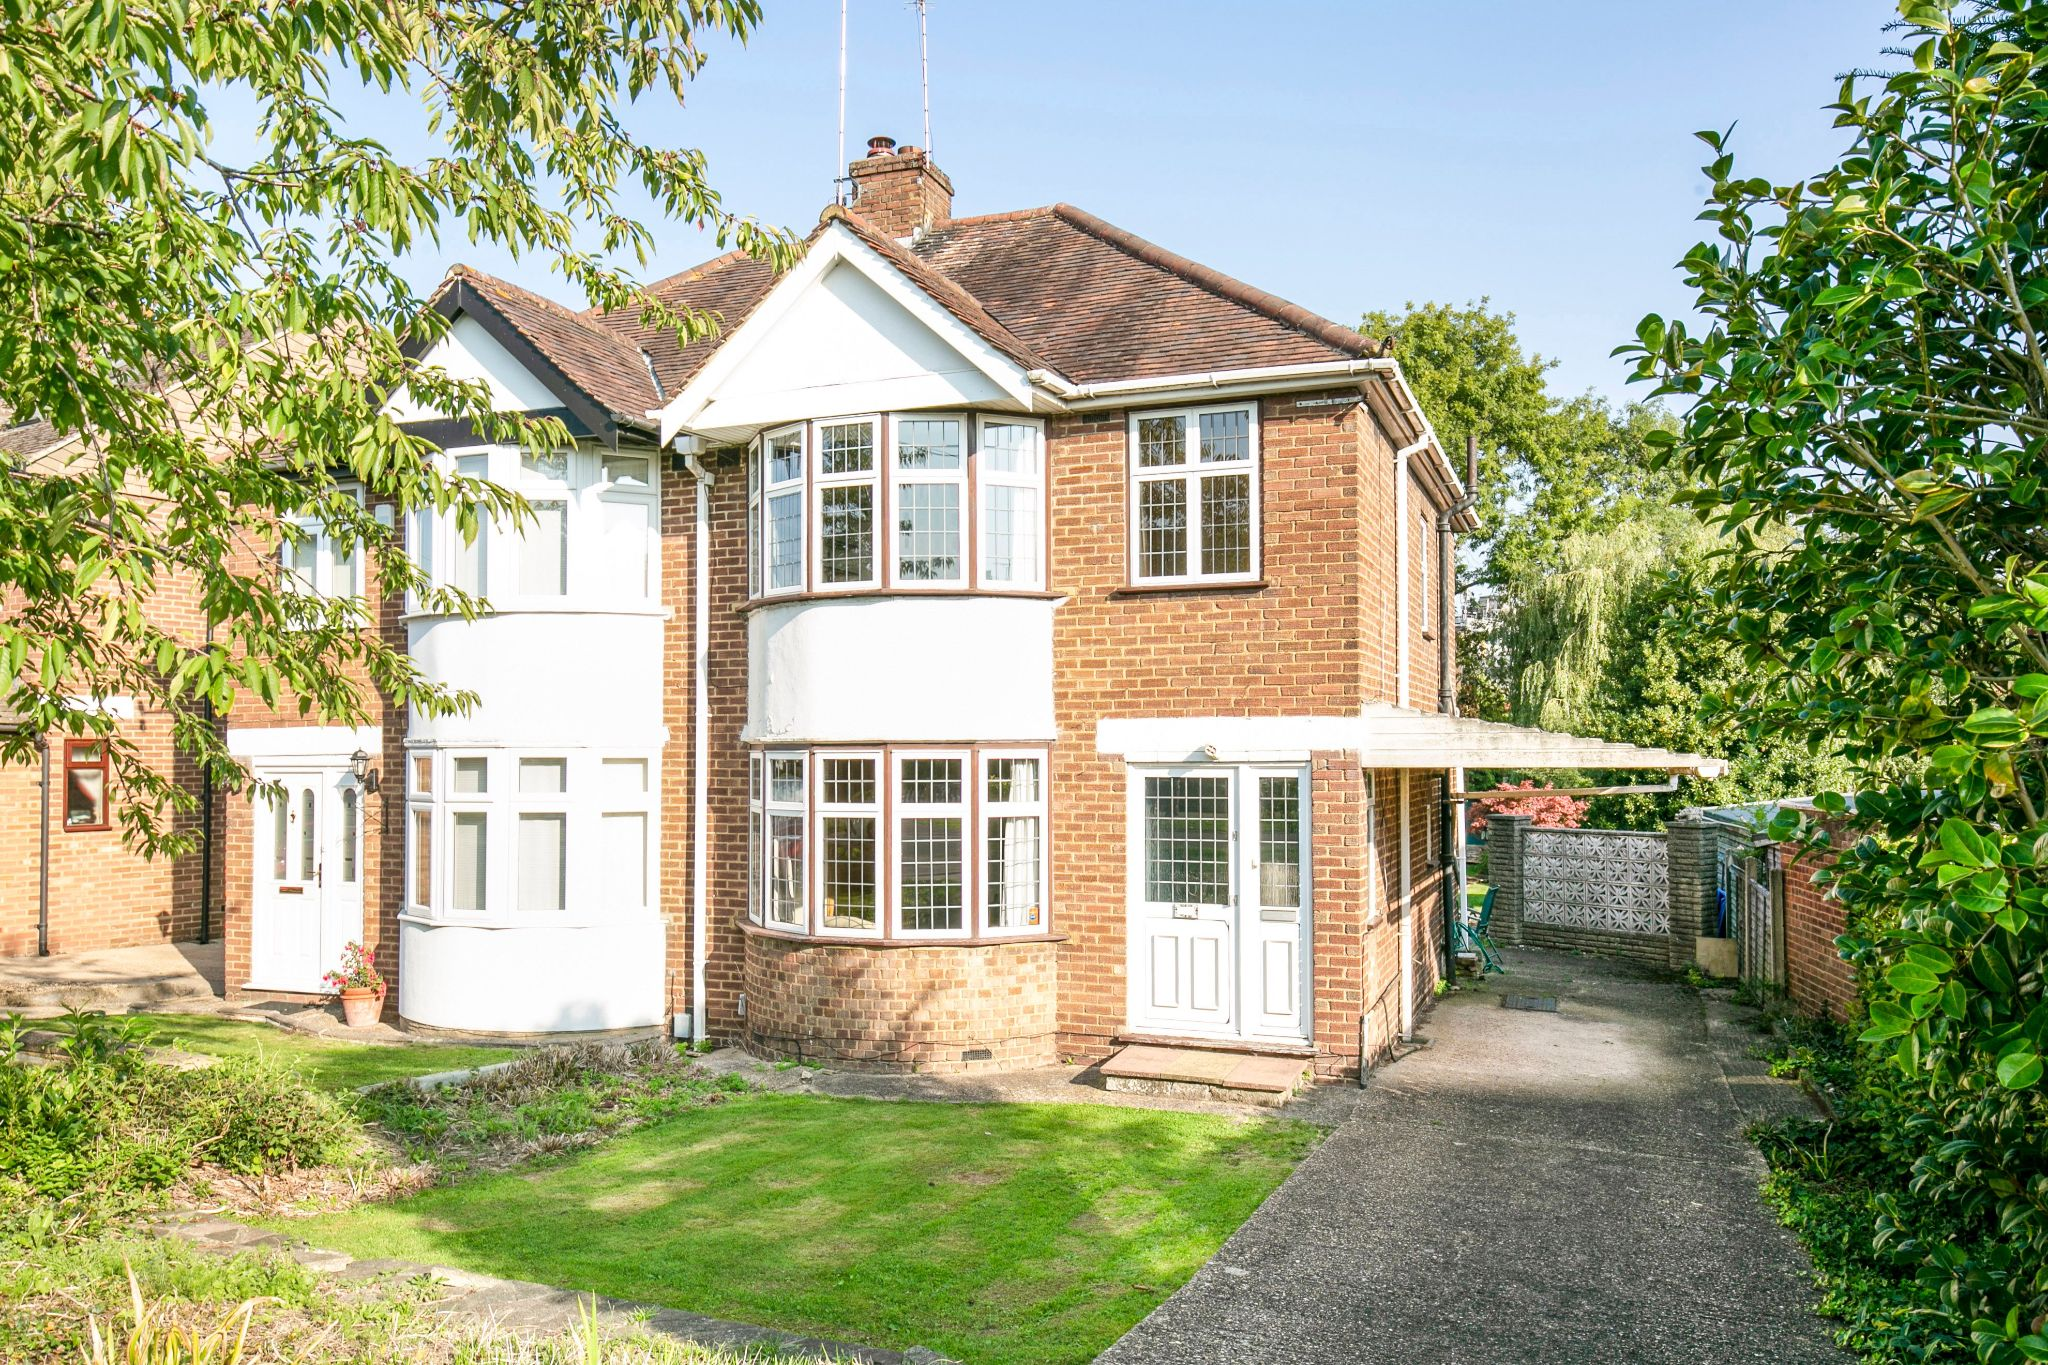 3 bedroom semi-detached house Sold in Potters Bar - Photograph 1